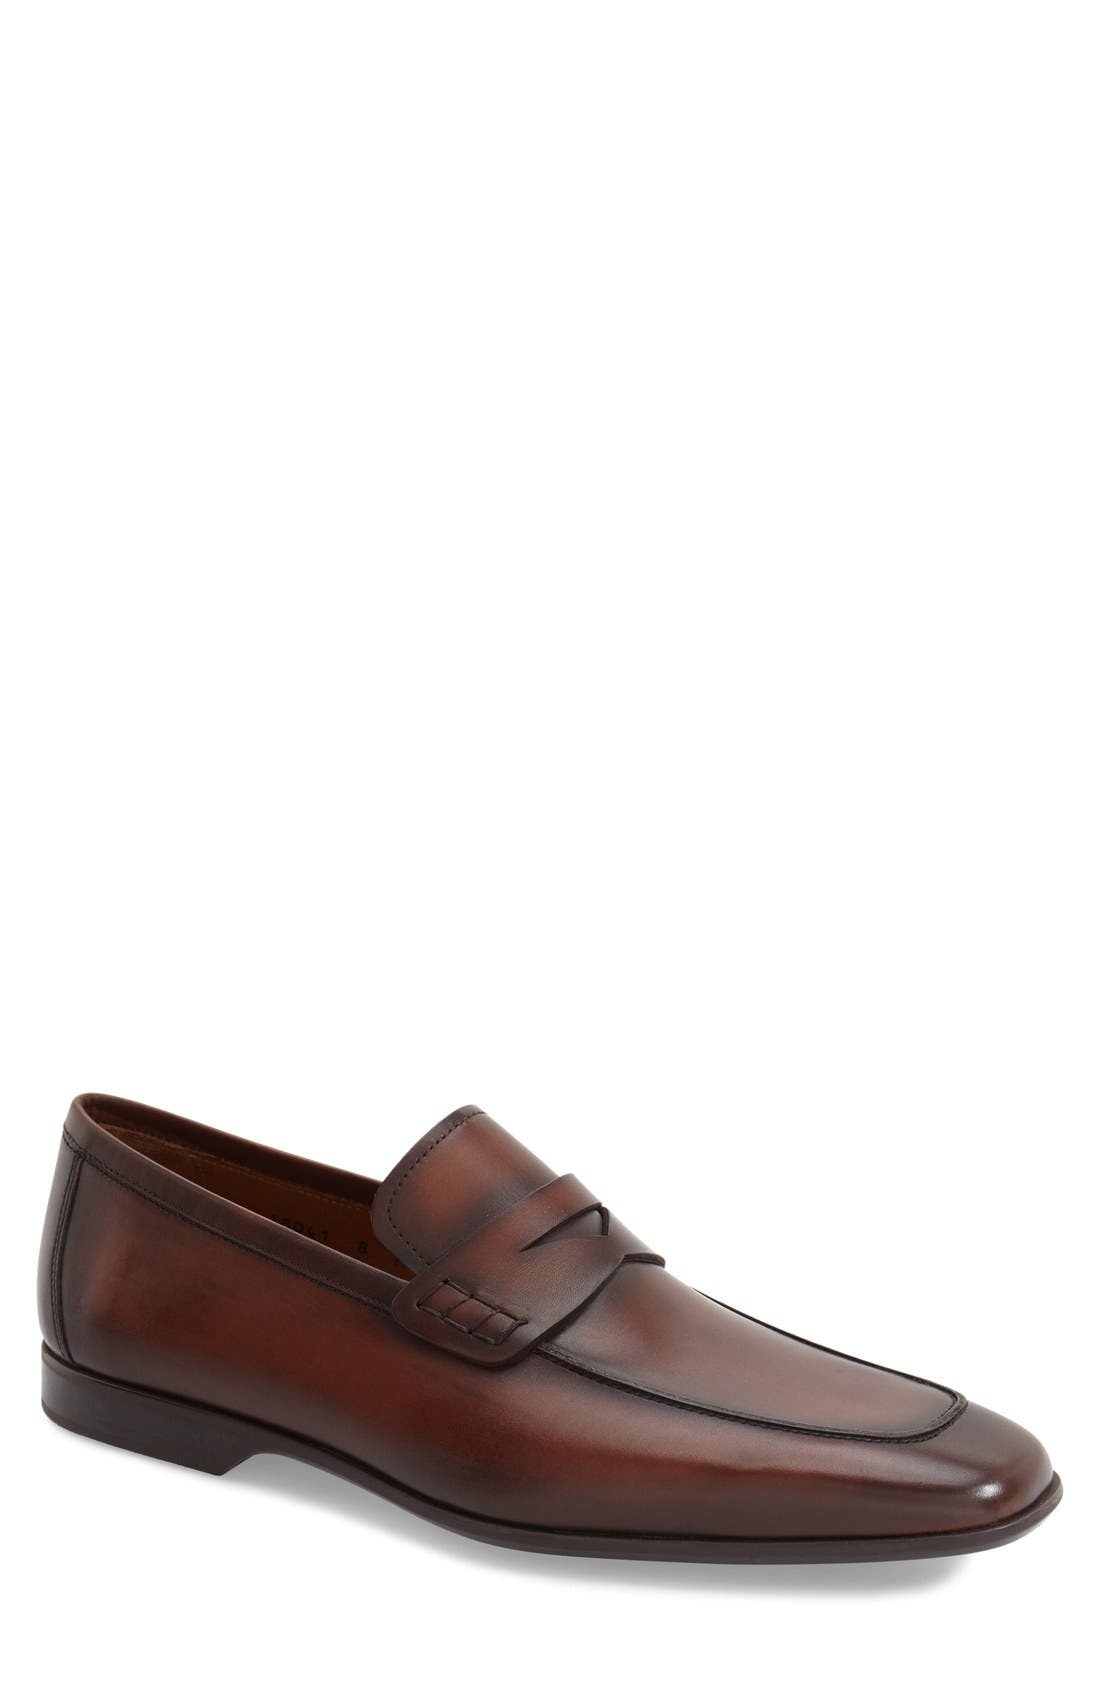 'Ramiro II' Penny Loafer,                             Main thumbnail 1, color,                             MID BROWN LEATHER